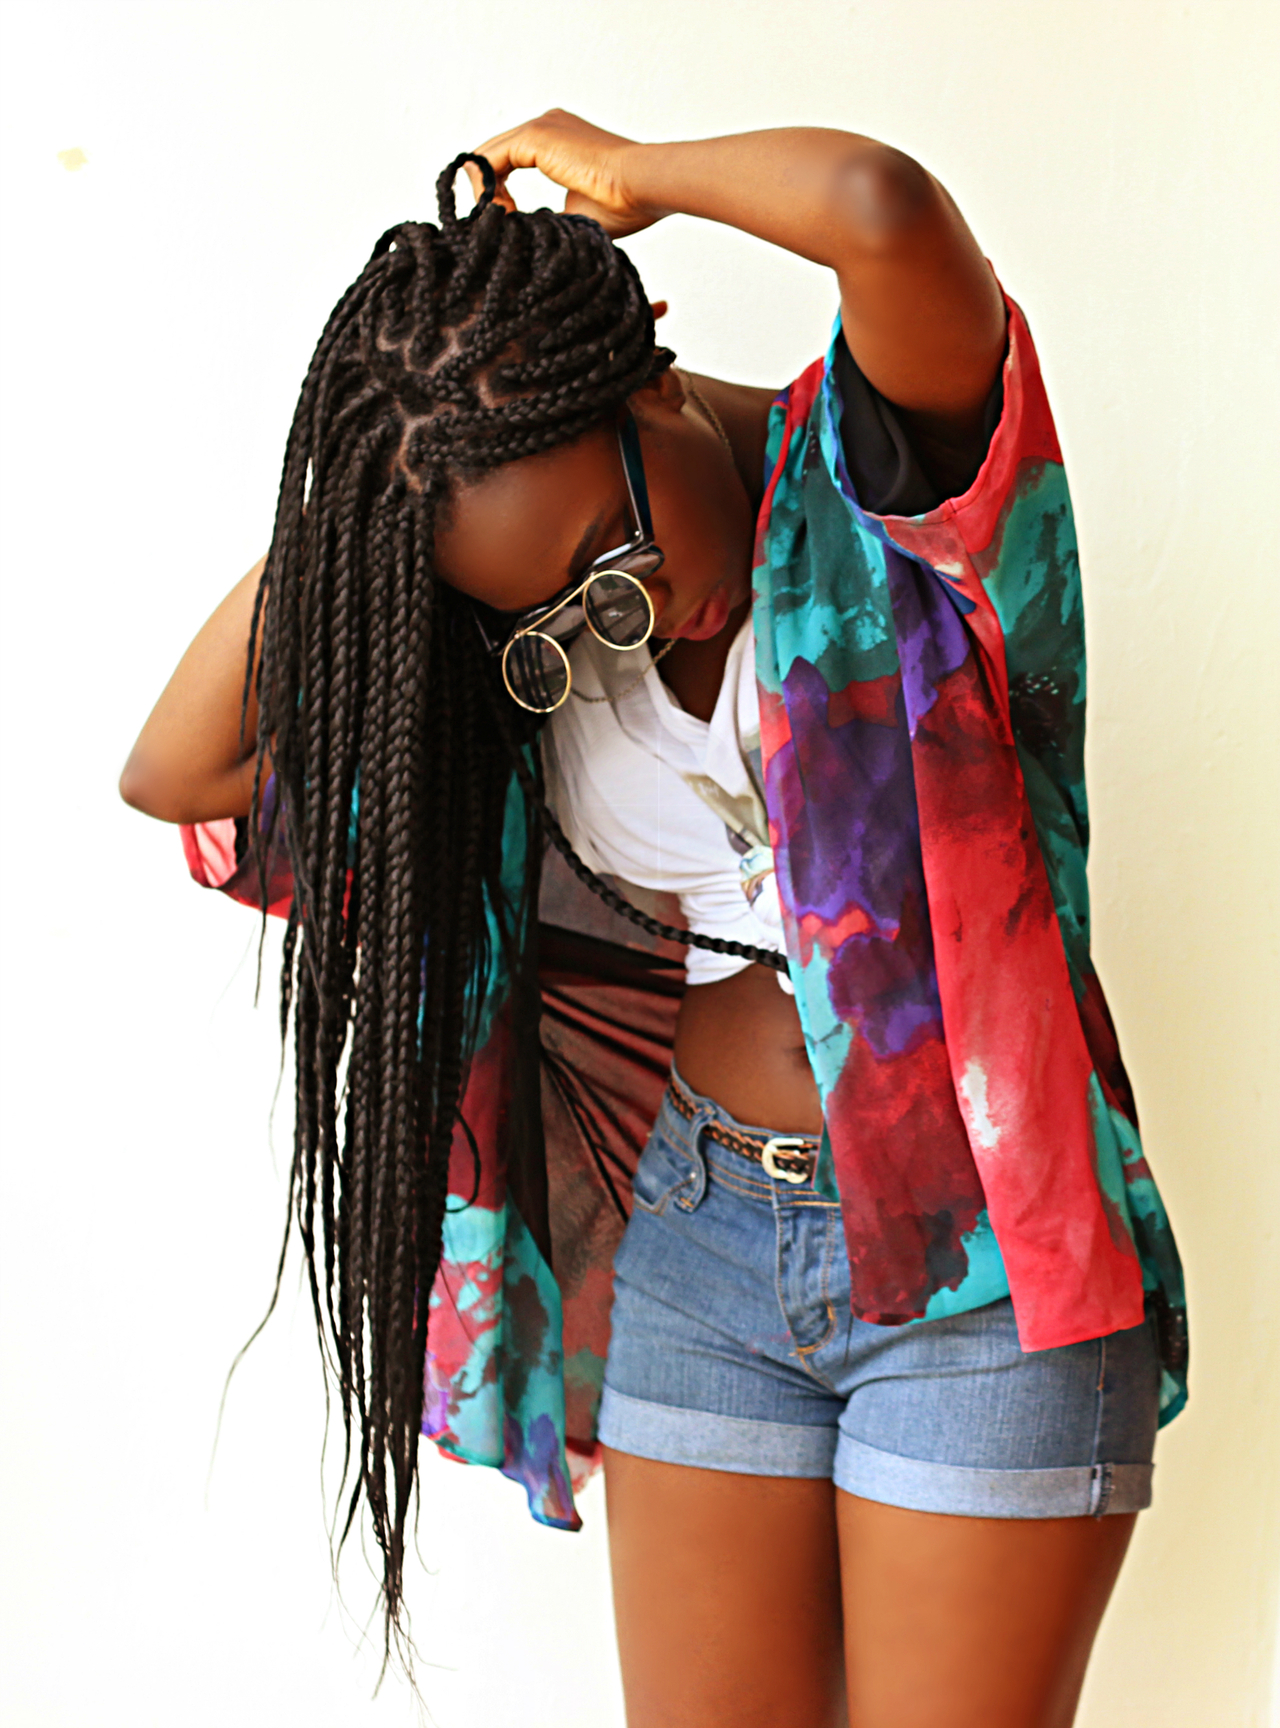 long boxing braids for black women